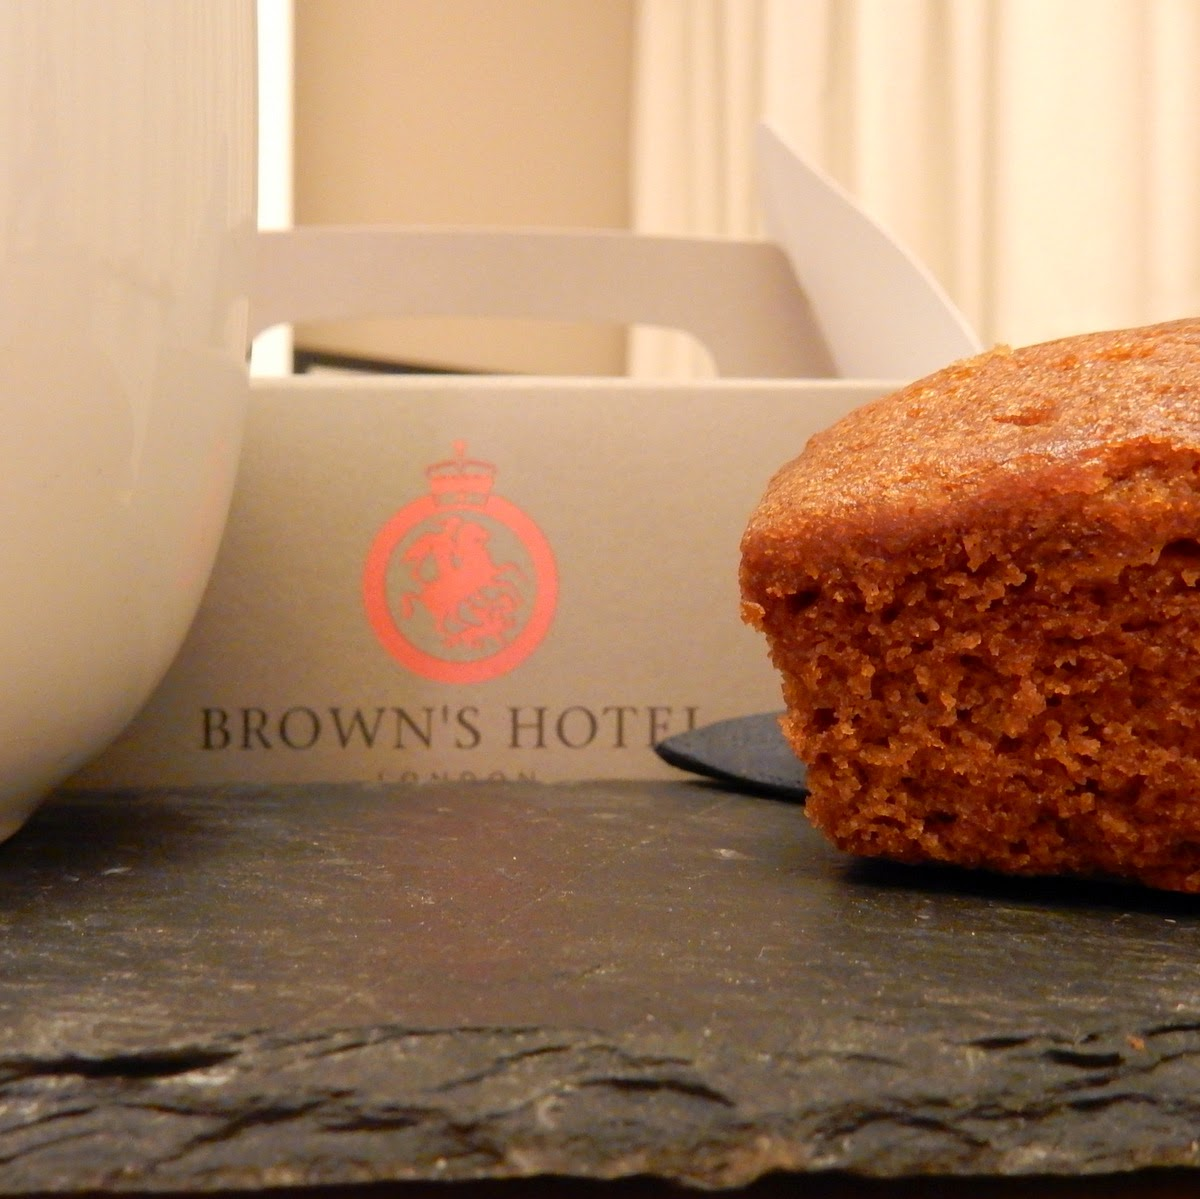 Afternoon Tea at Brown's Hotel (and a hashtag of bloggers)